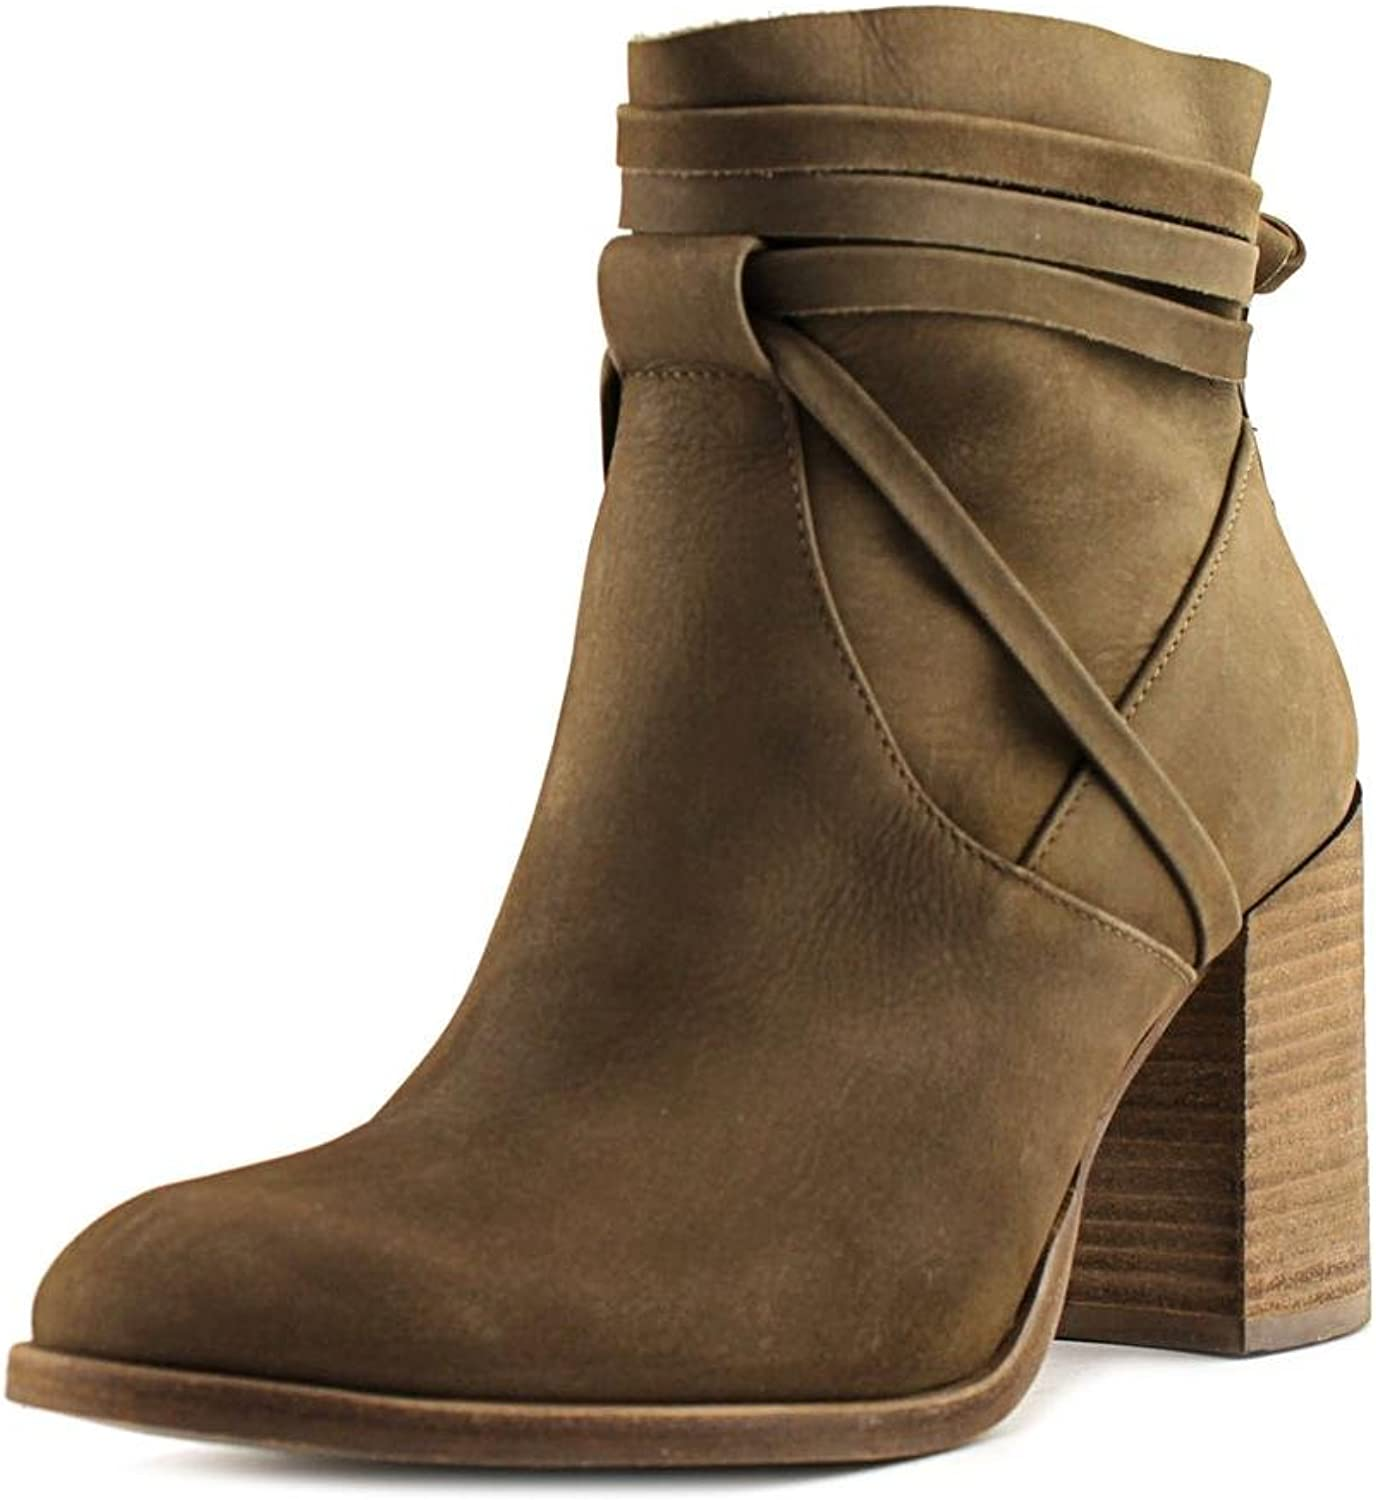 Steve Madden Percy Women US 6.5 Tan Ankle Boot